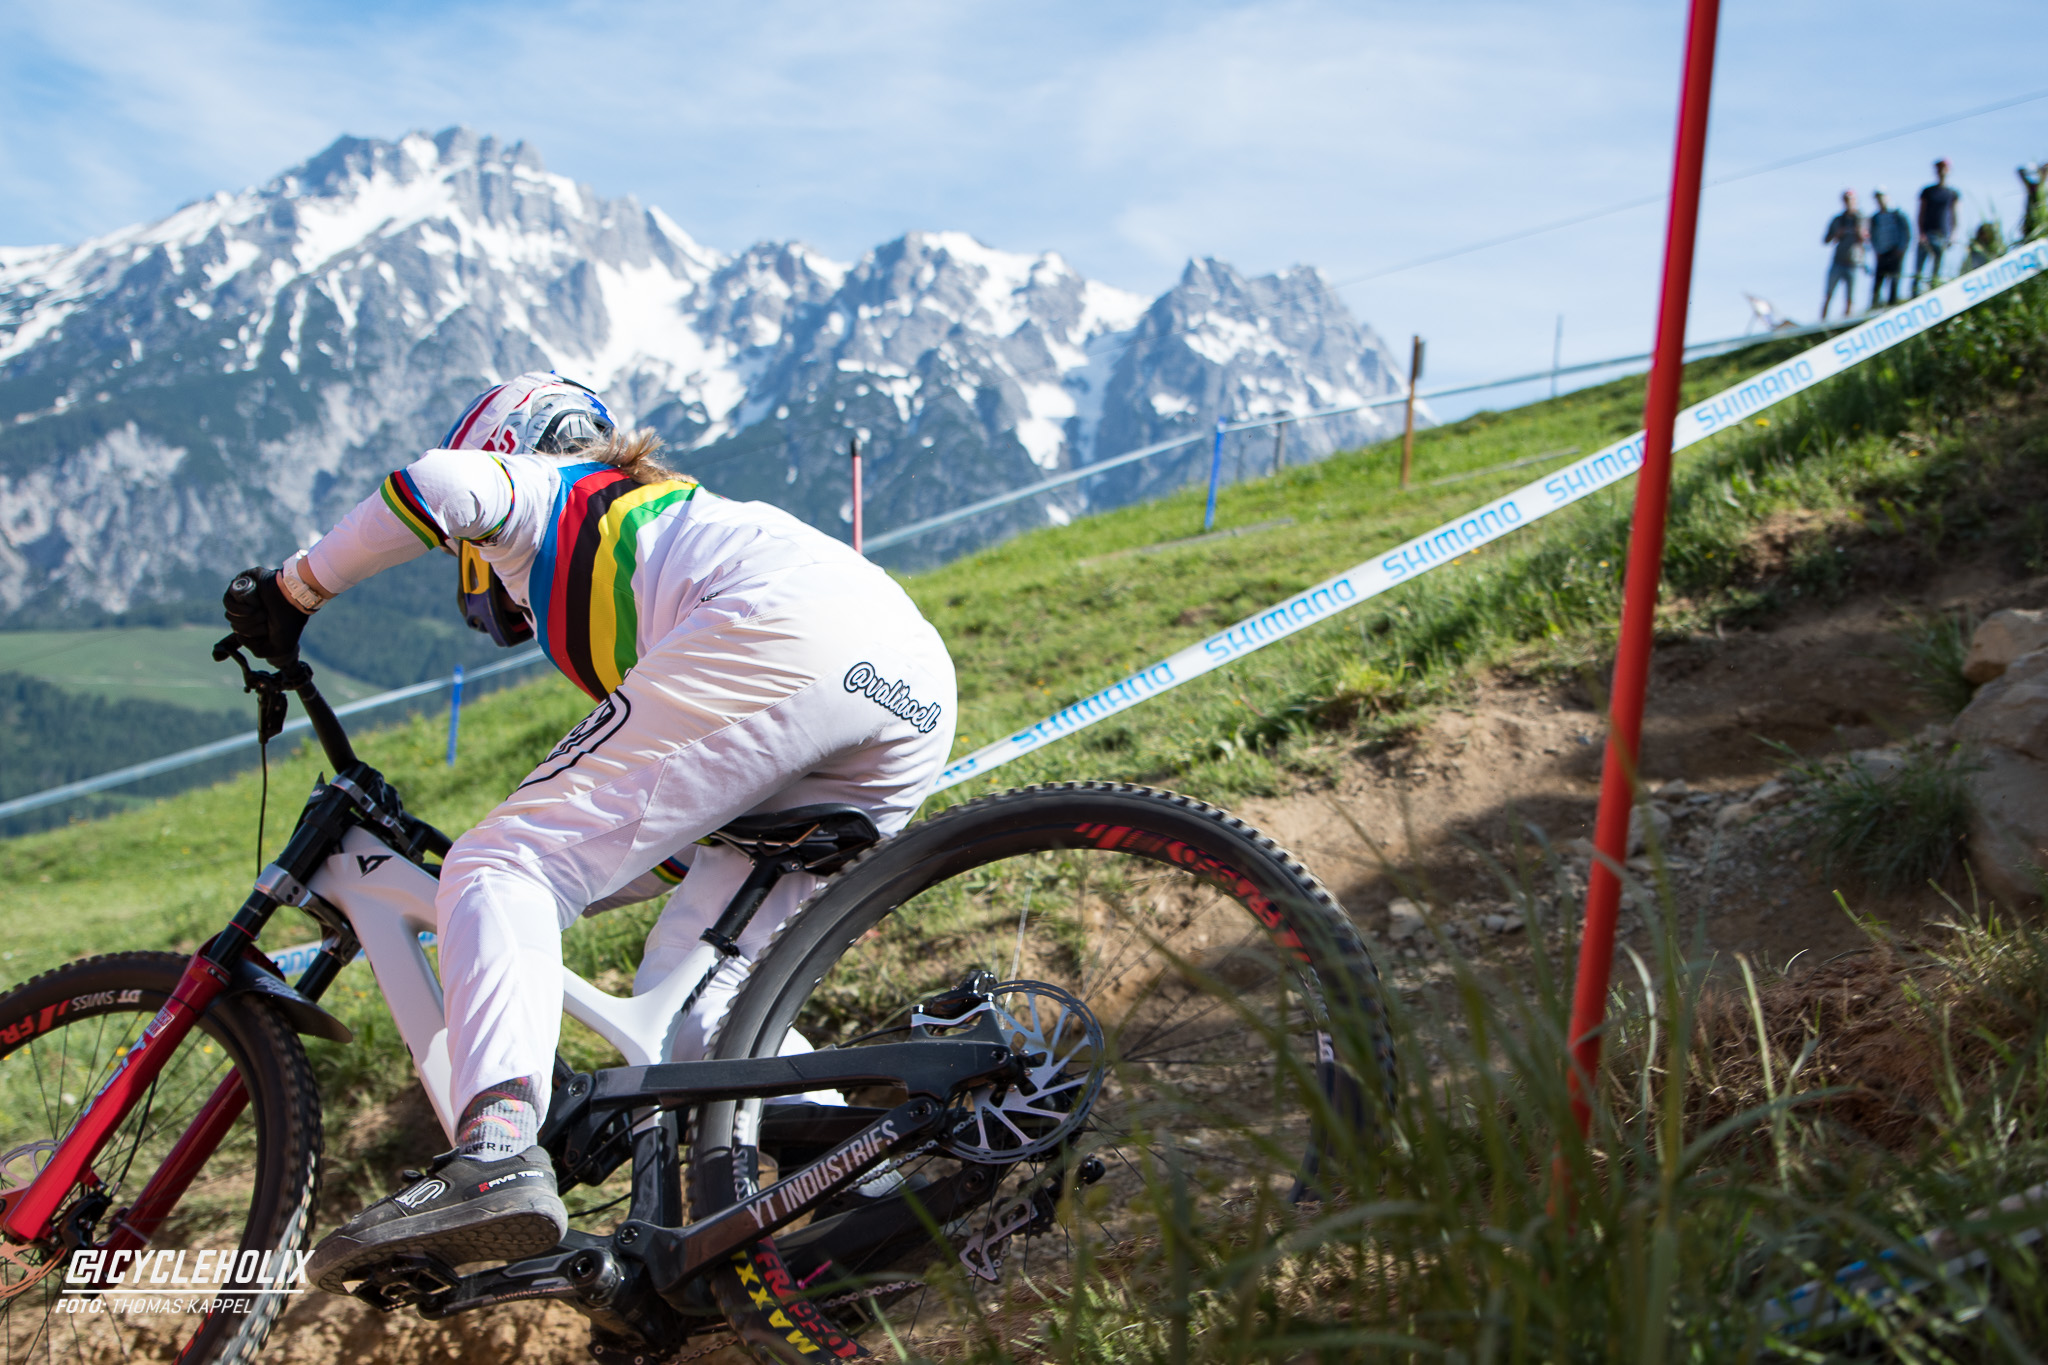 2019 Downhill Worldcup Leogang Finale Action 2